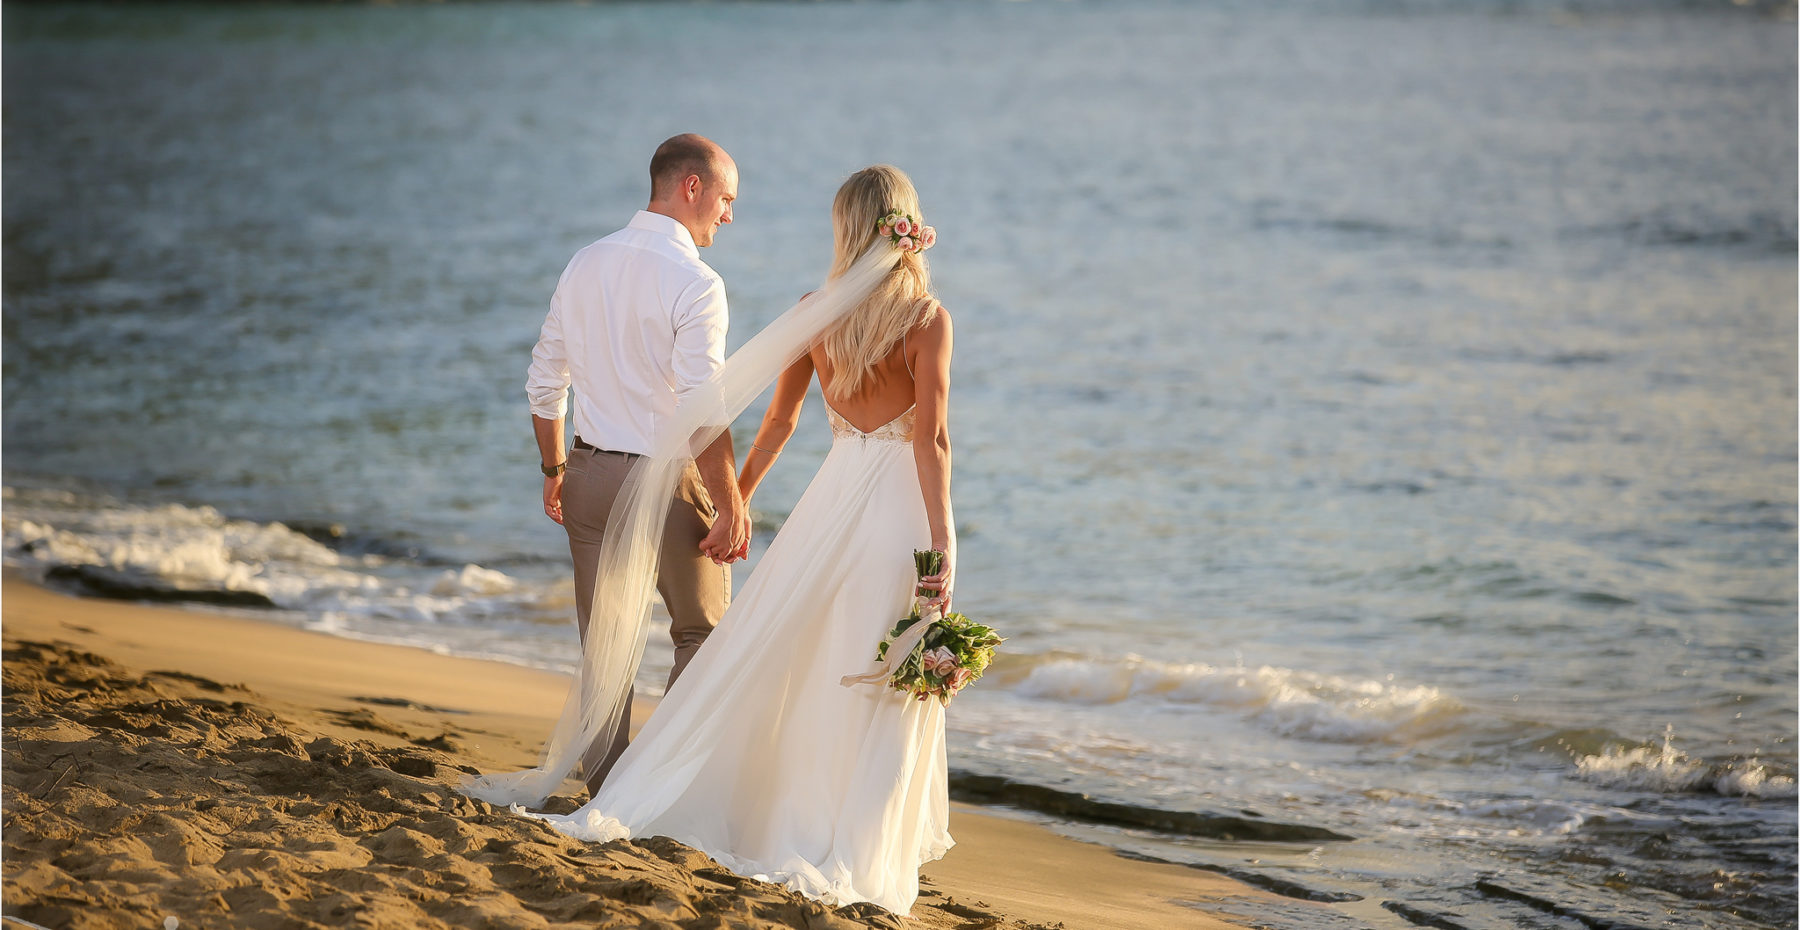 Newlywed couple hand in hand enjoying the ocean after their romantic beach elopement